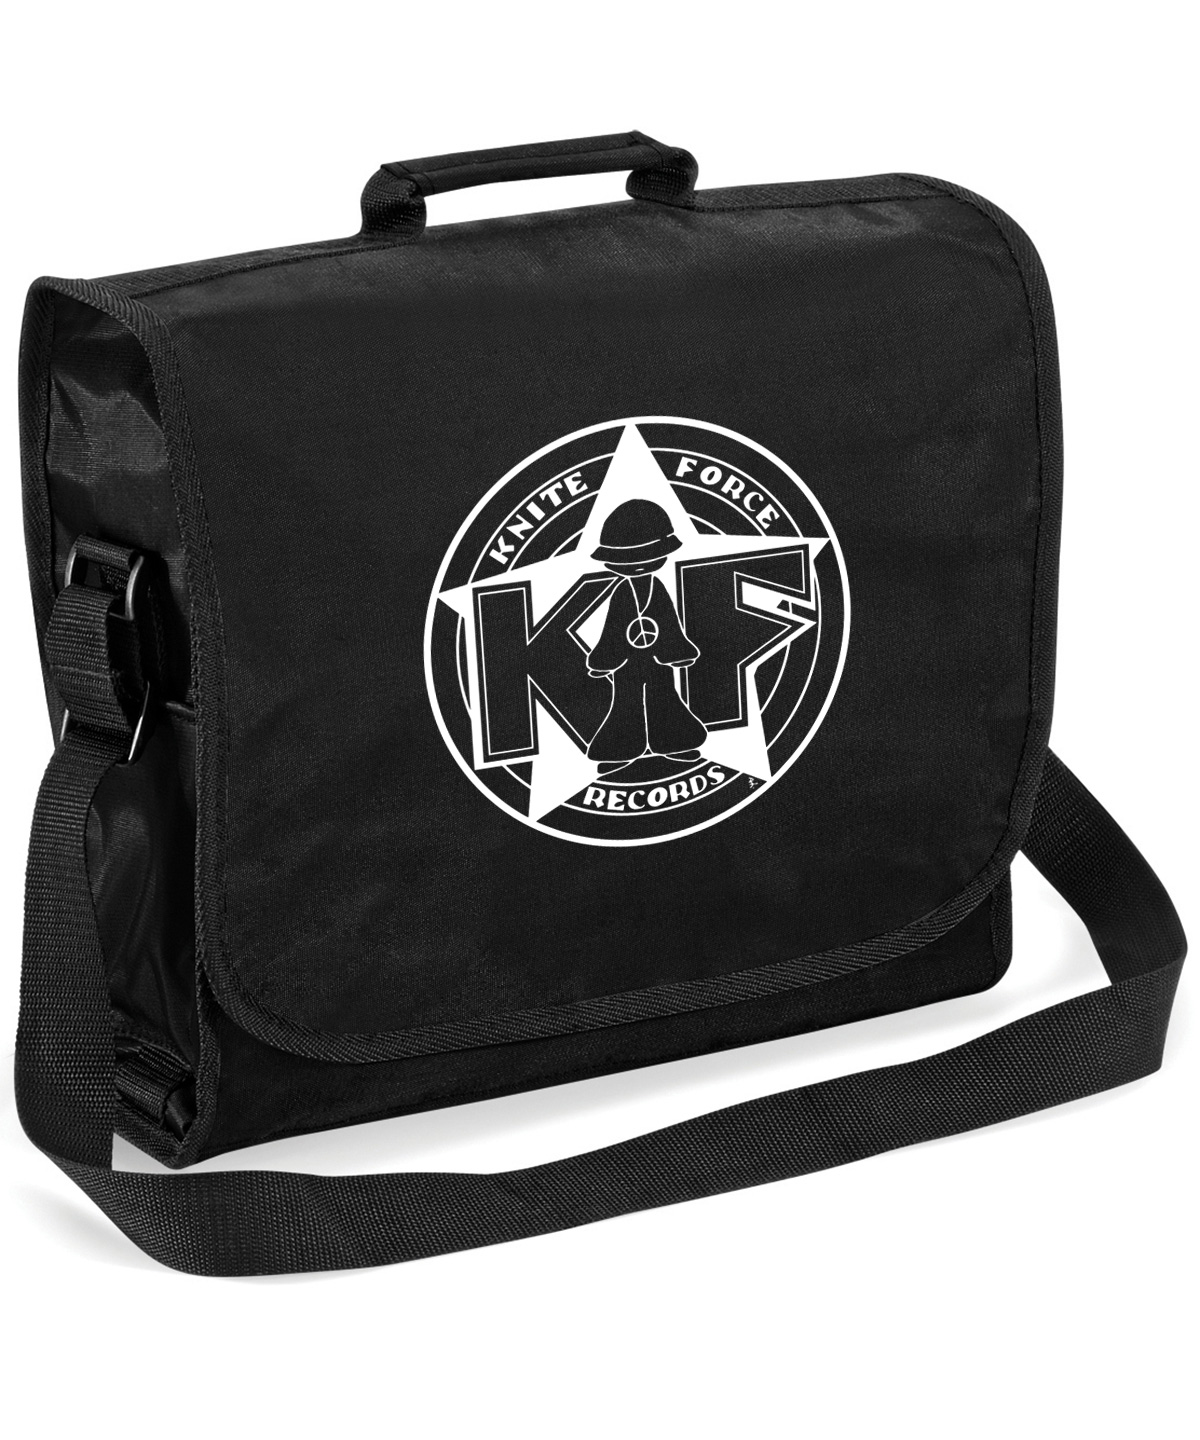 Kniteforce Record Bag